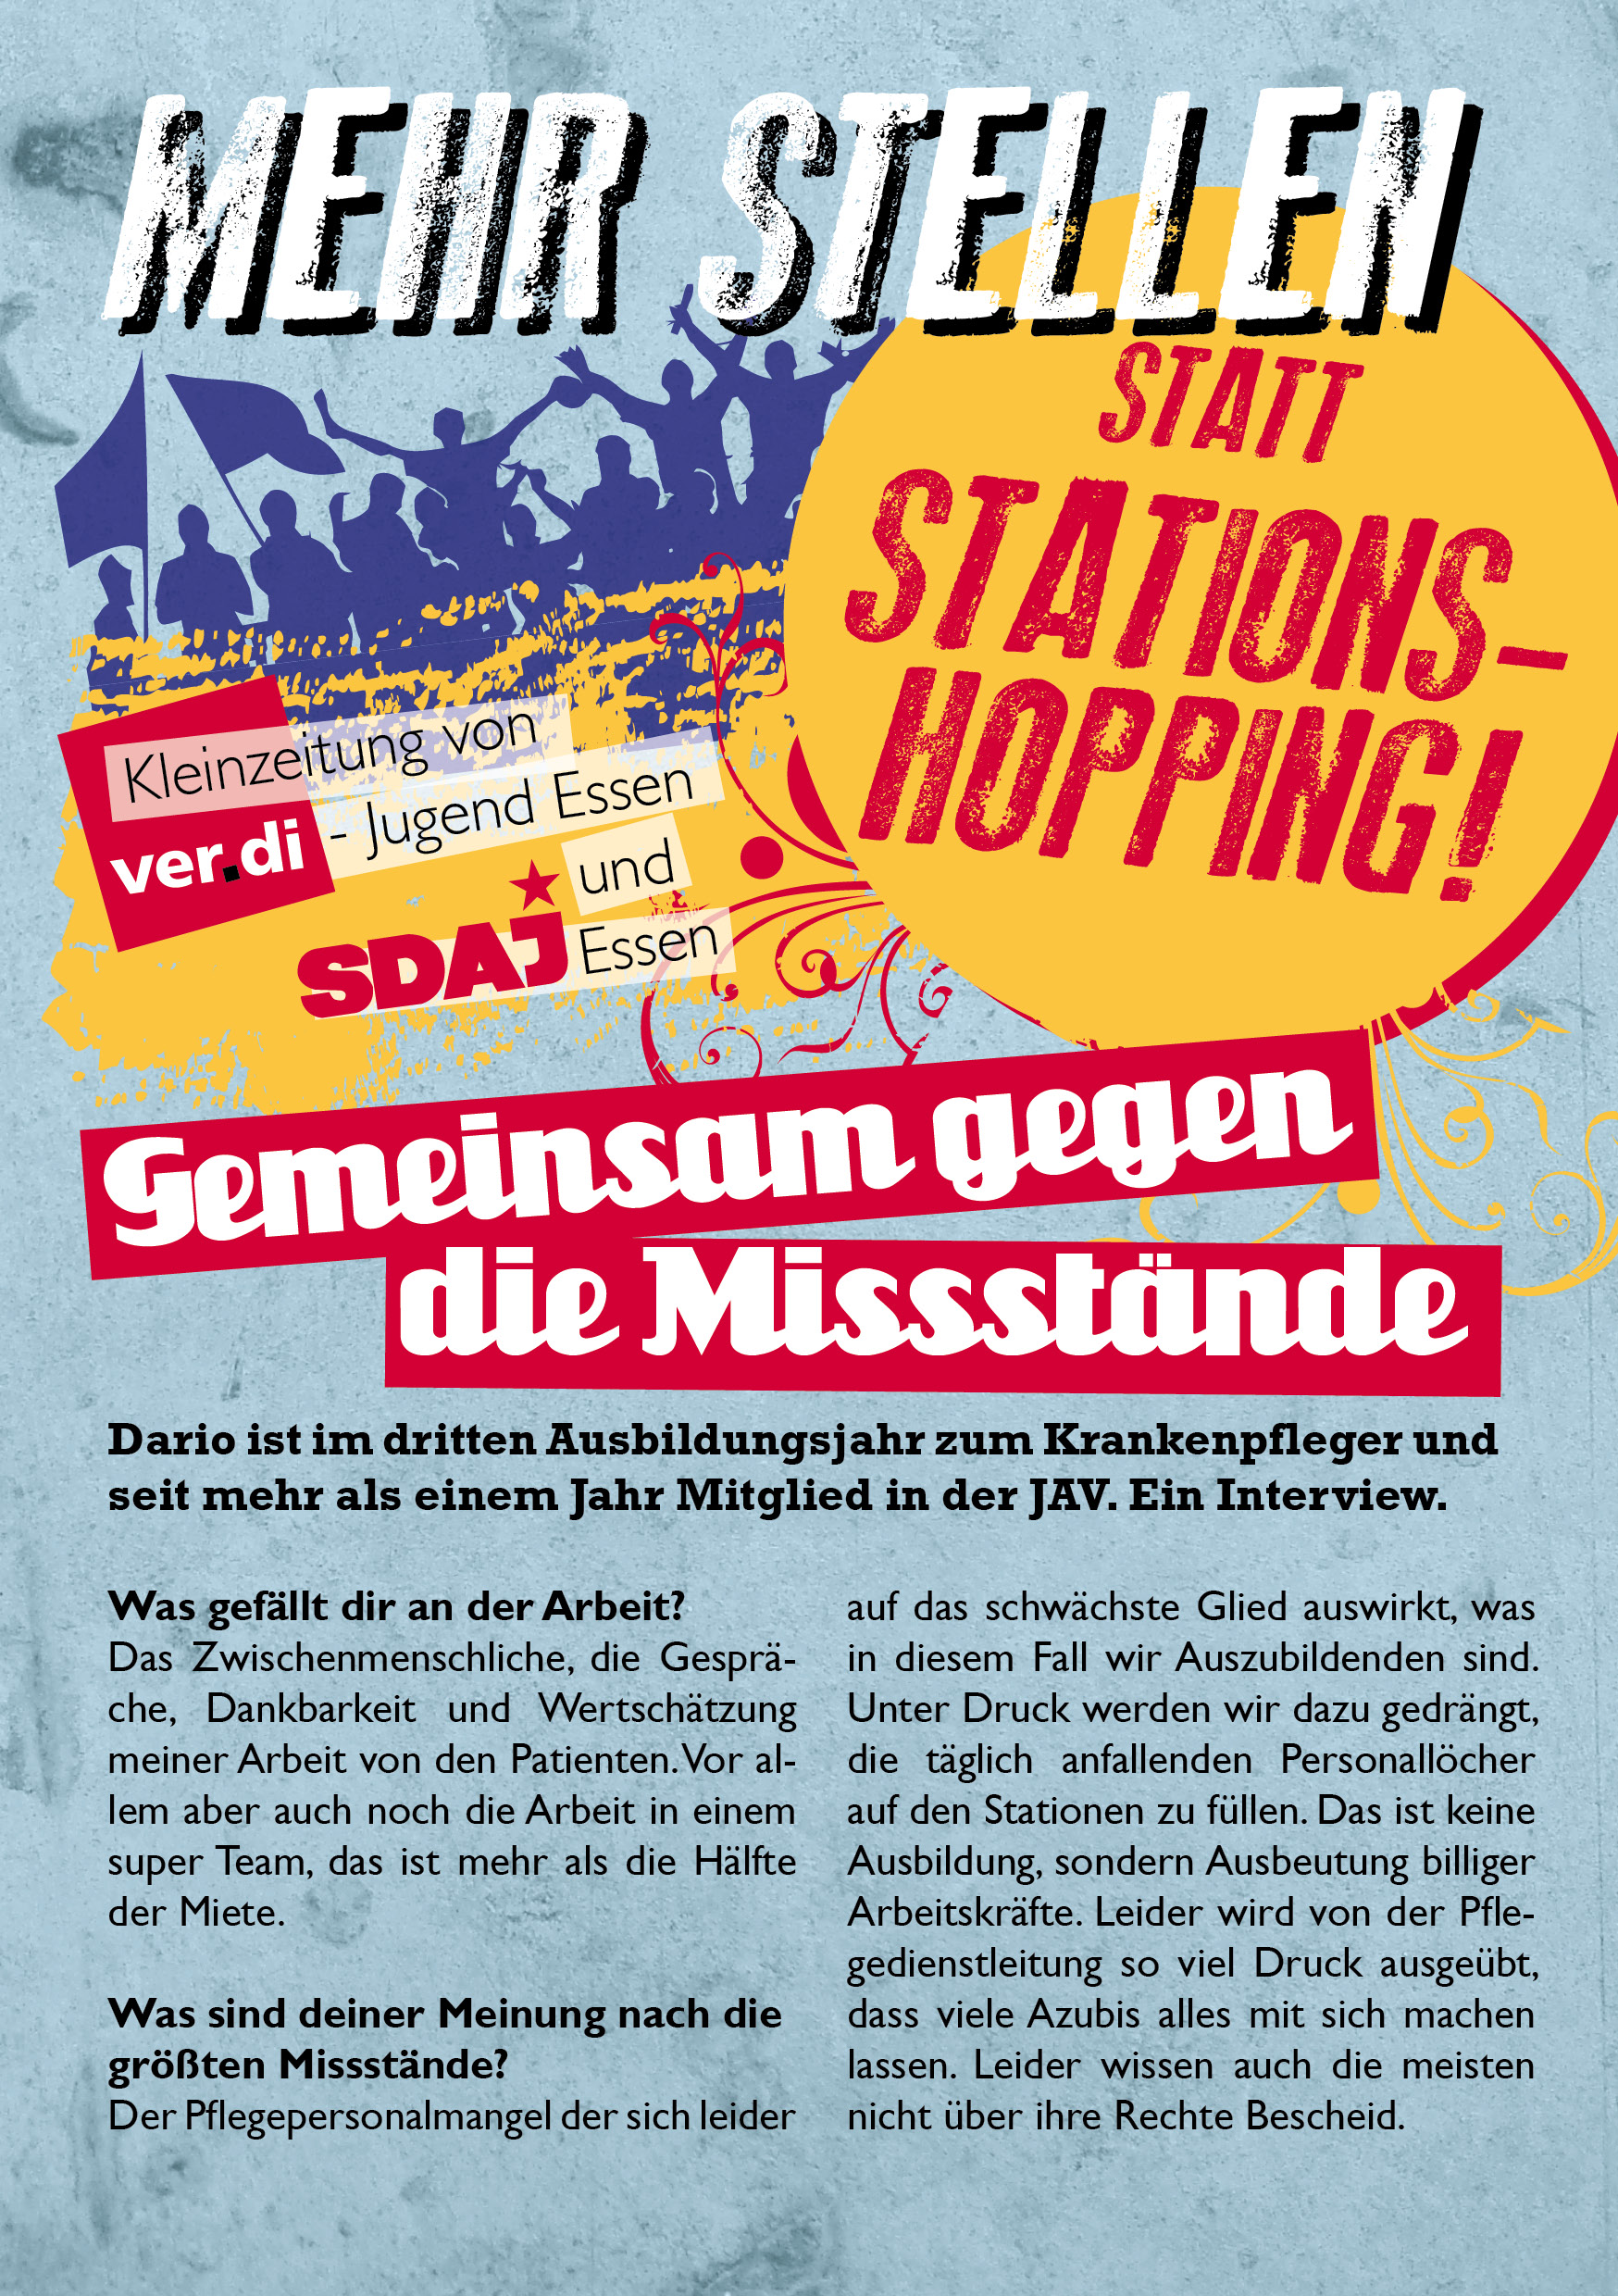 Outing in Essen: Gegen Stationshopping